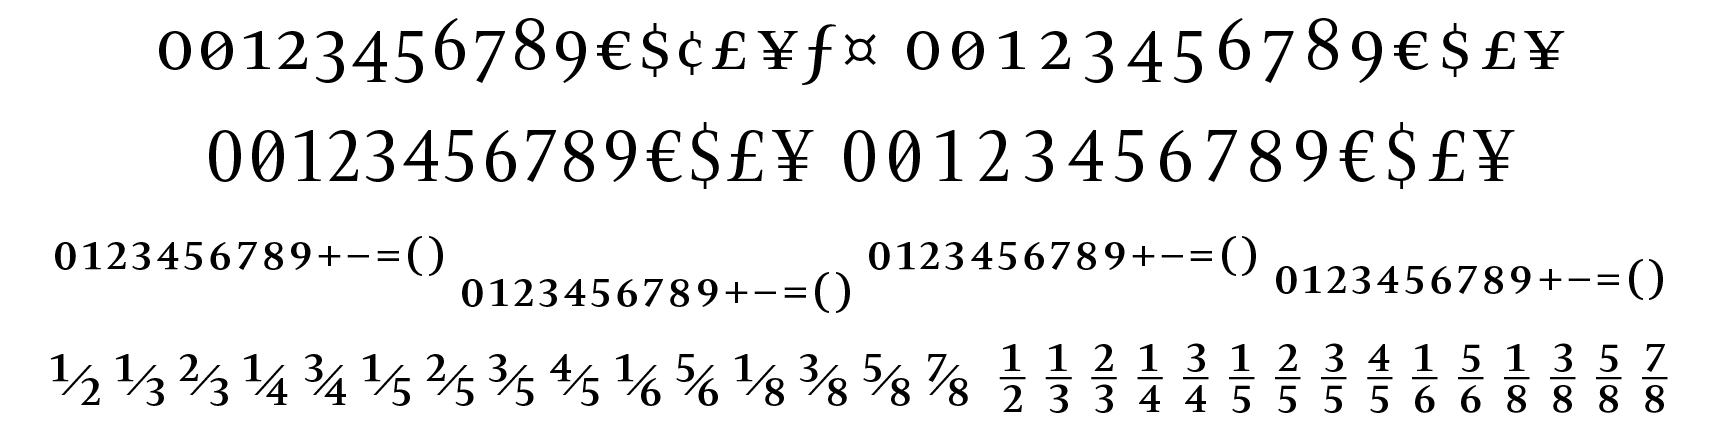 <p>Figures &amp; currency</p> glyphs